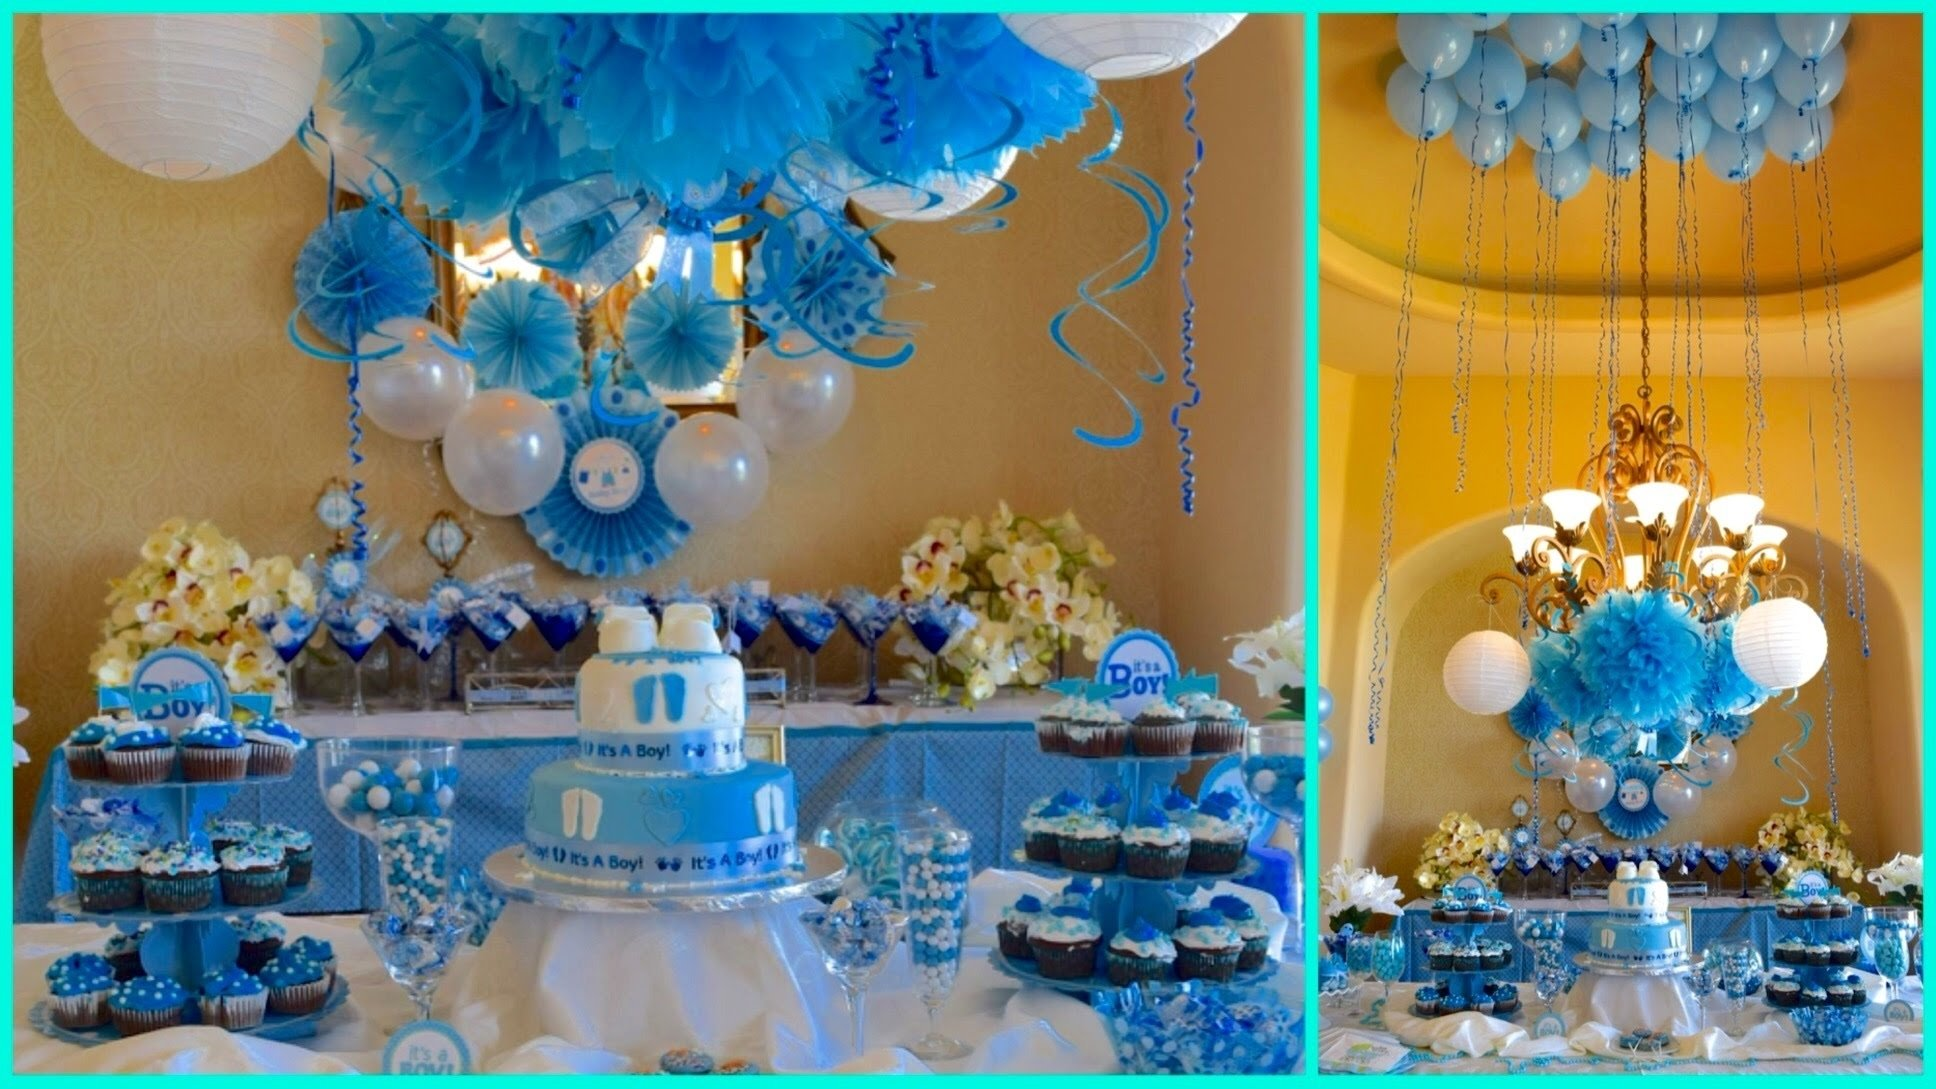 10 Trendy Baby Shower For Boys Ideas baby shower ideas for boy blue theme youtube 7 2021